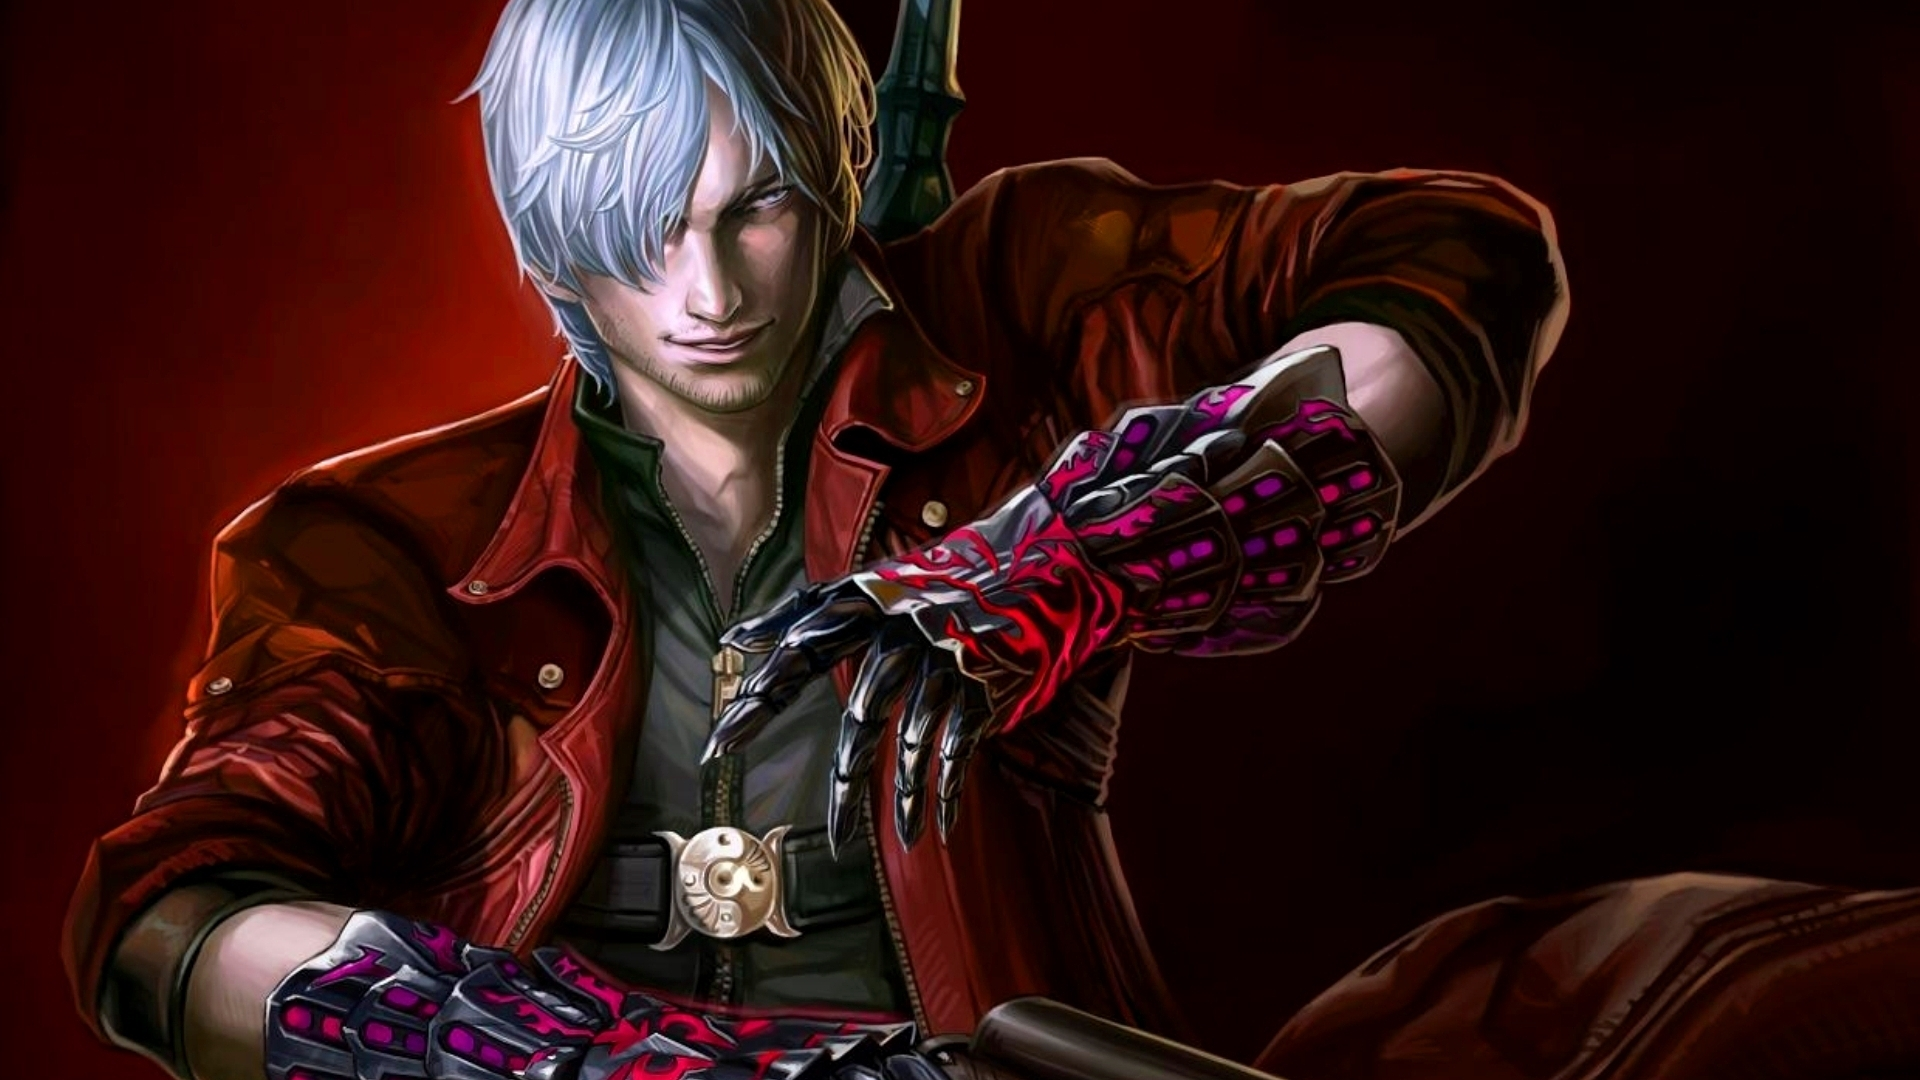 of Devil May Cry 4 You are downloading Devil May Cry 4 wallpaper 5 1920x1080